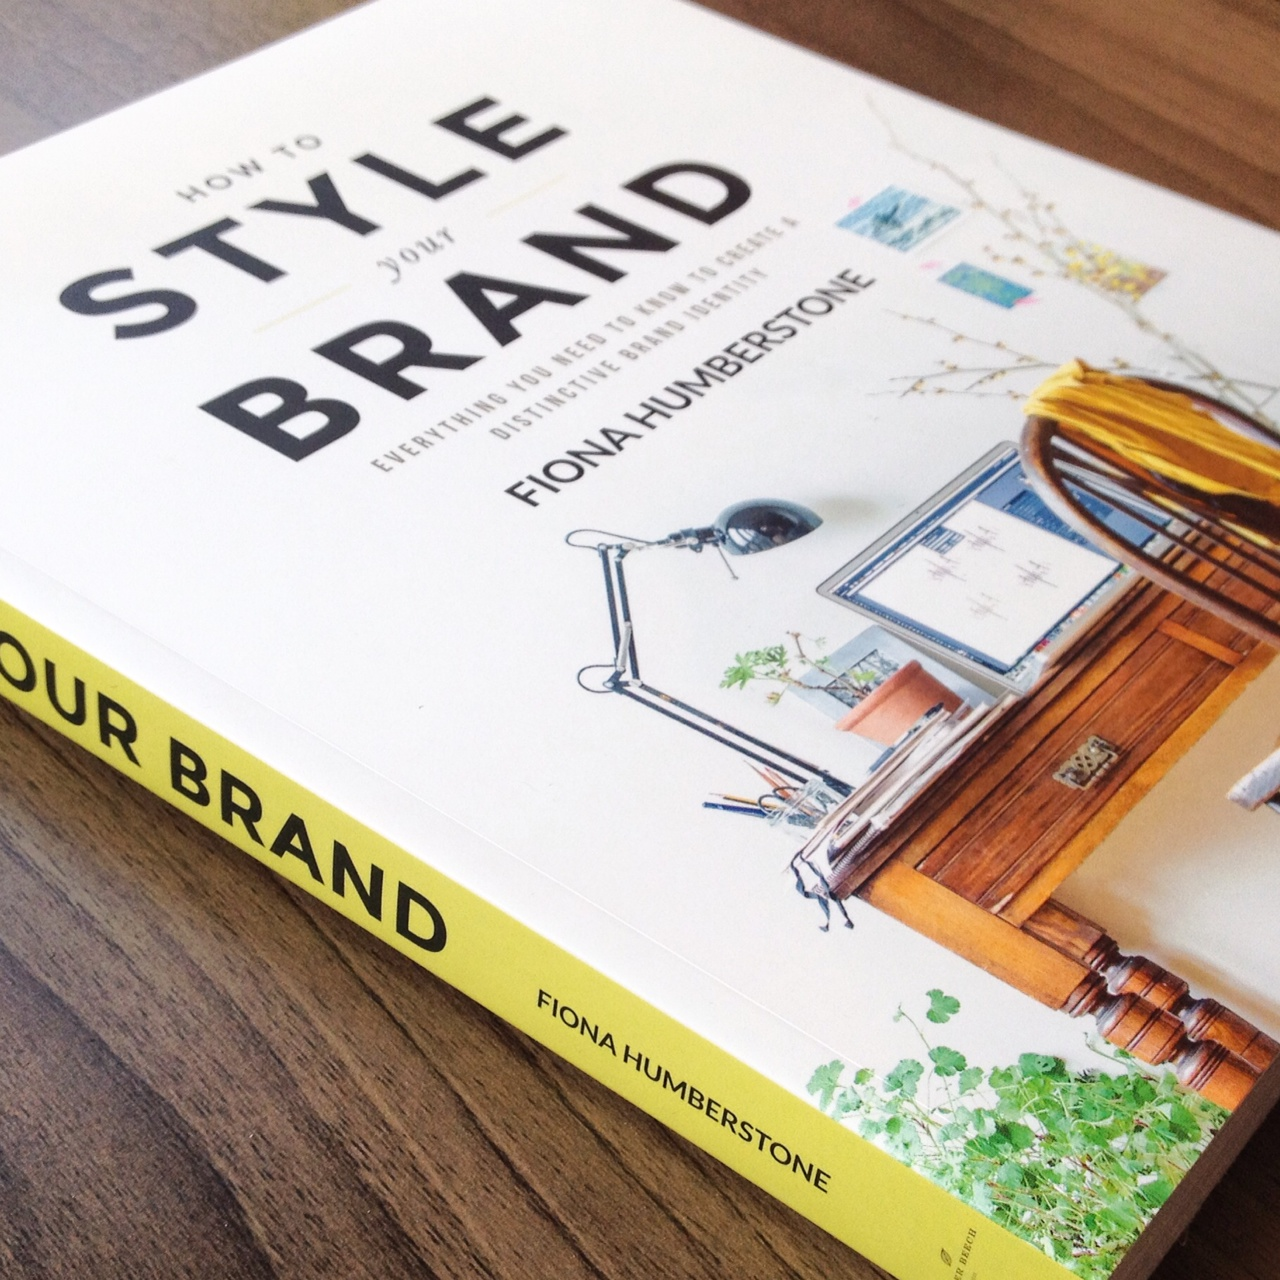 Ditto Creative featured in How To Style Your Brand